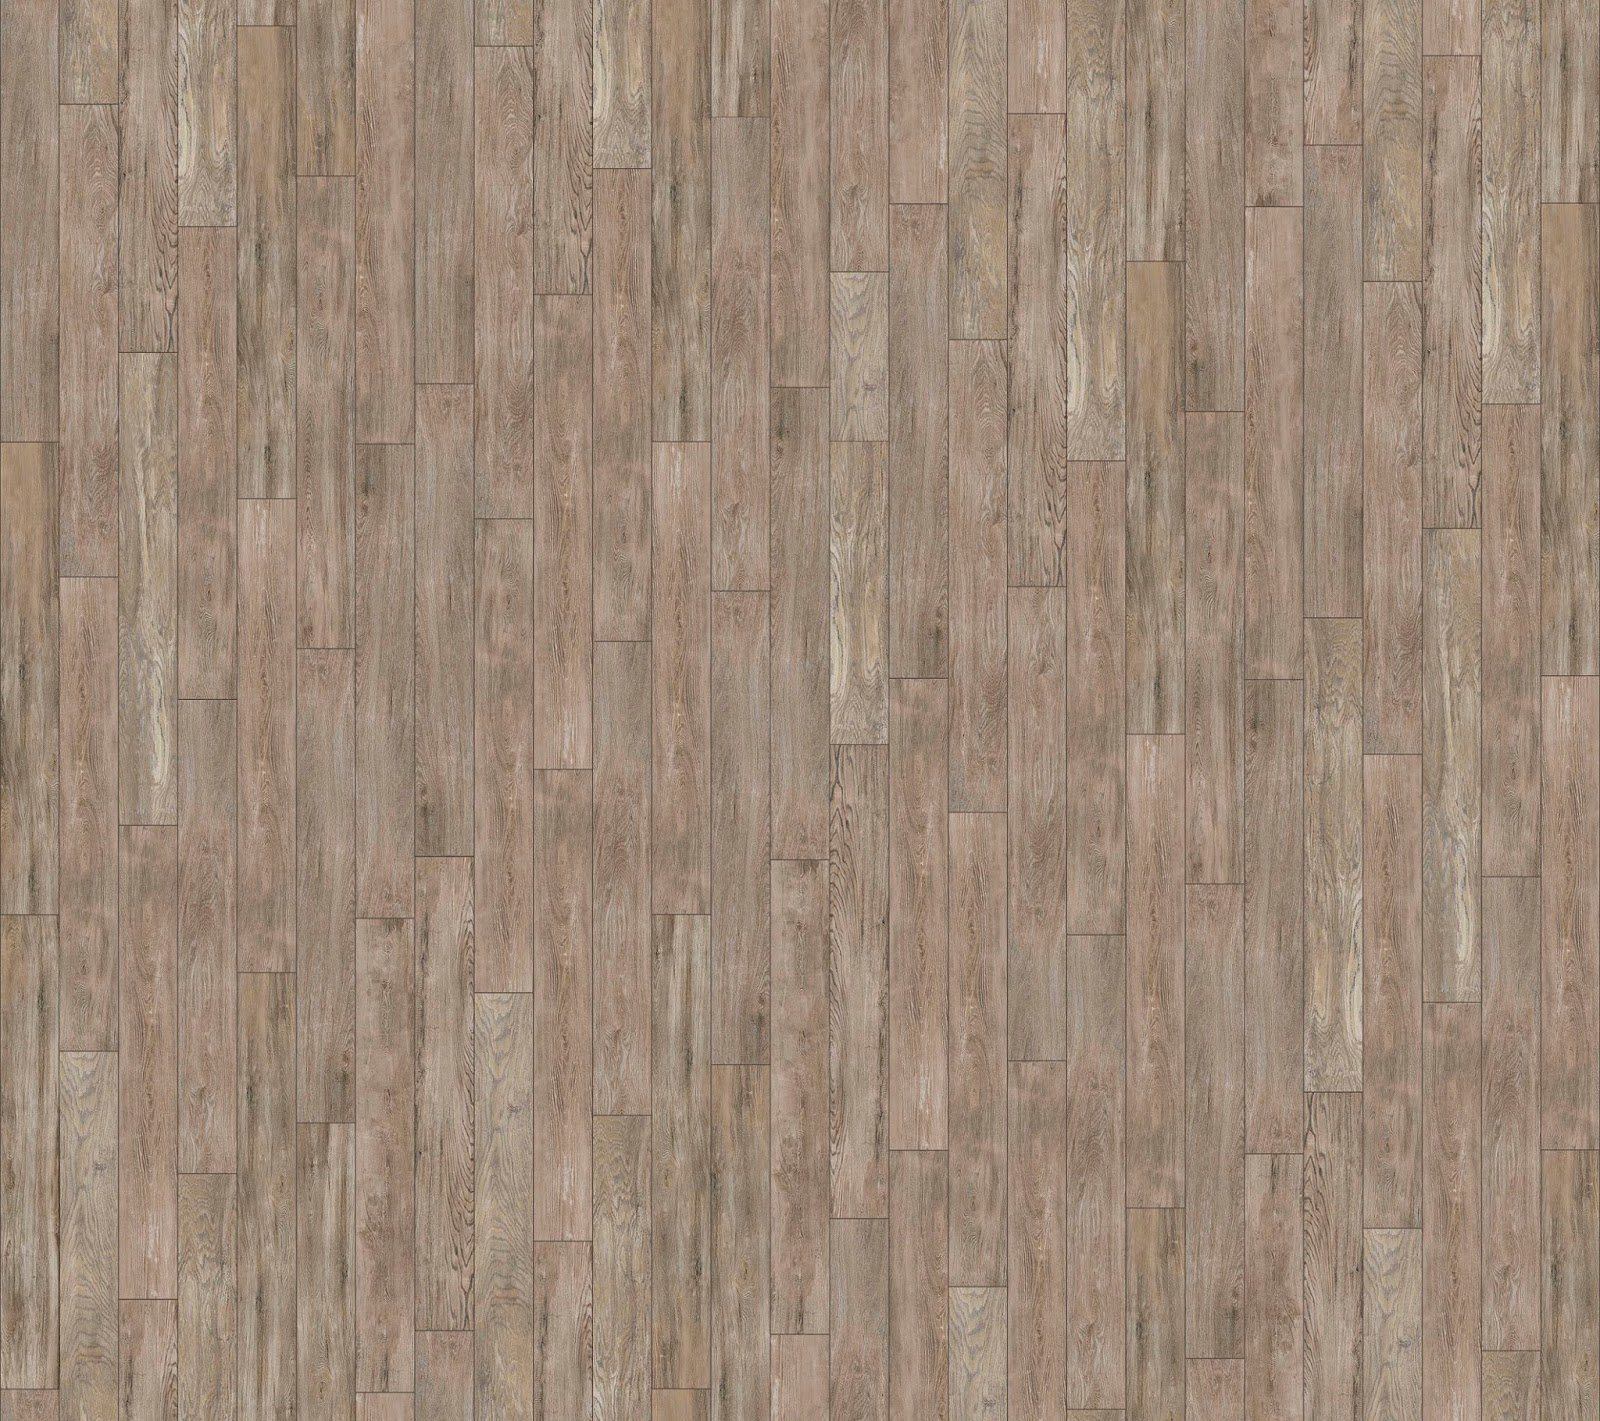 Parqet Texture Seamless Parquet Vray Sketchup Tut